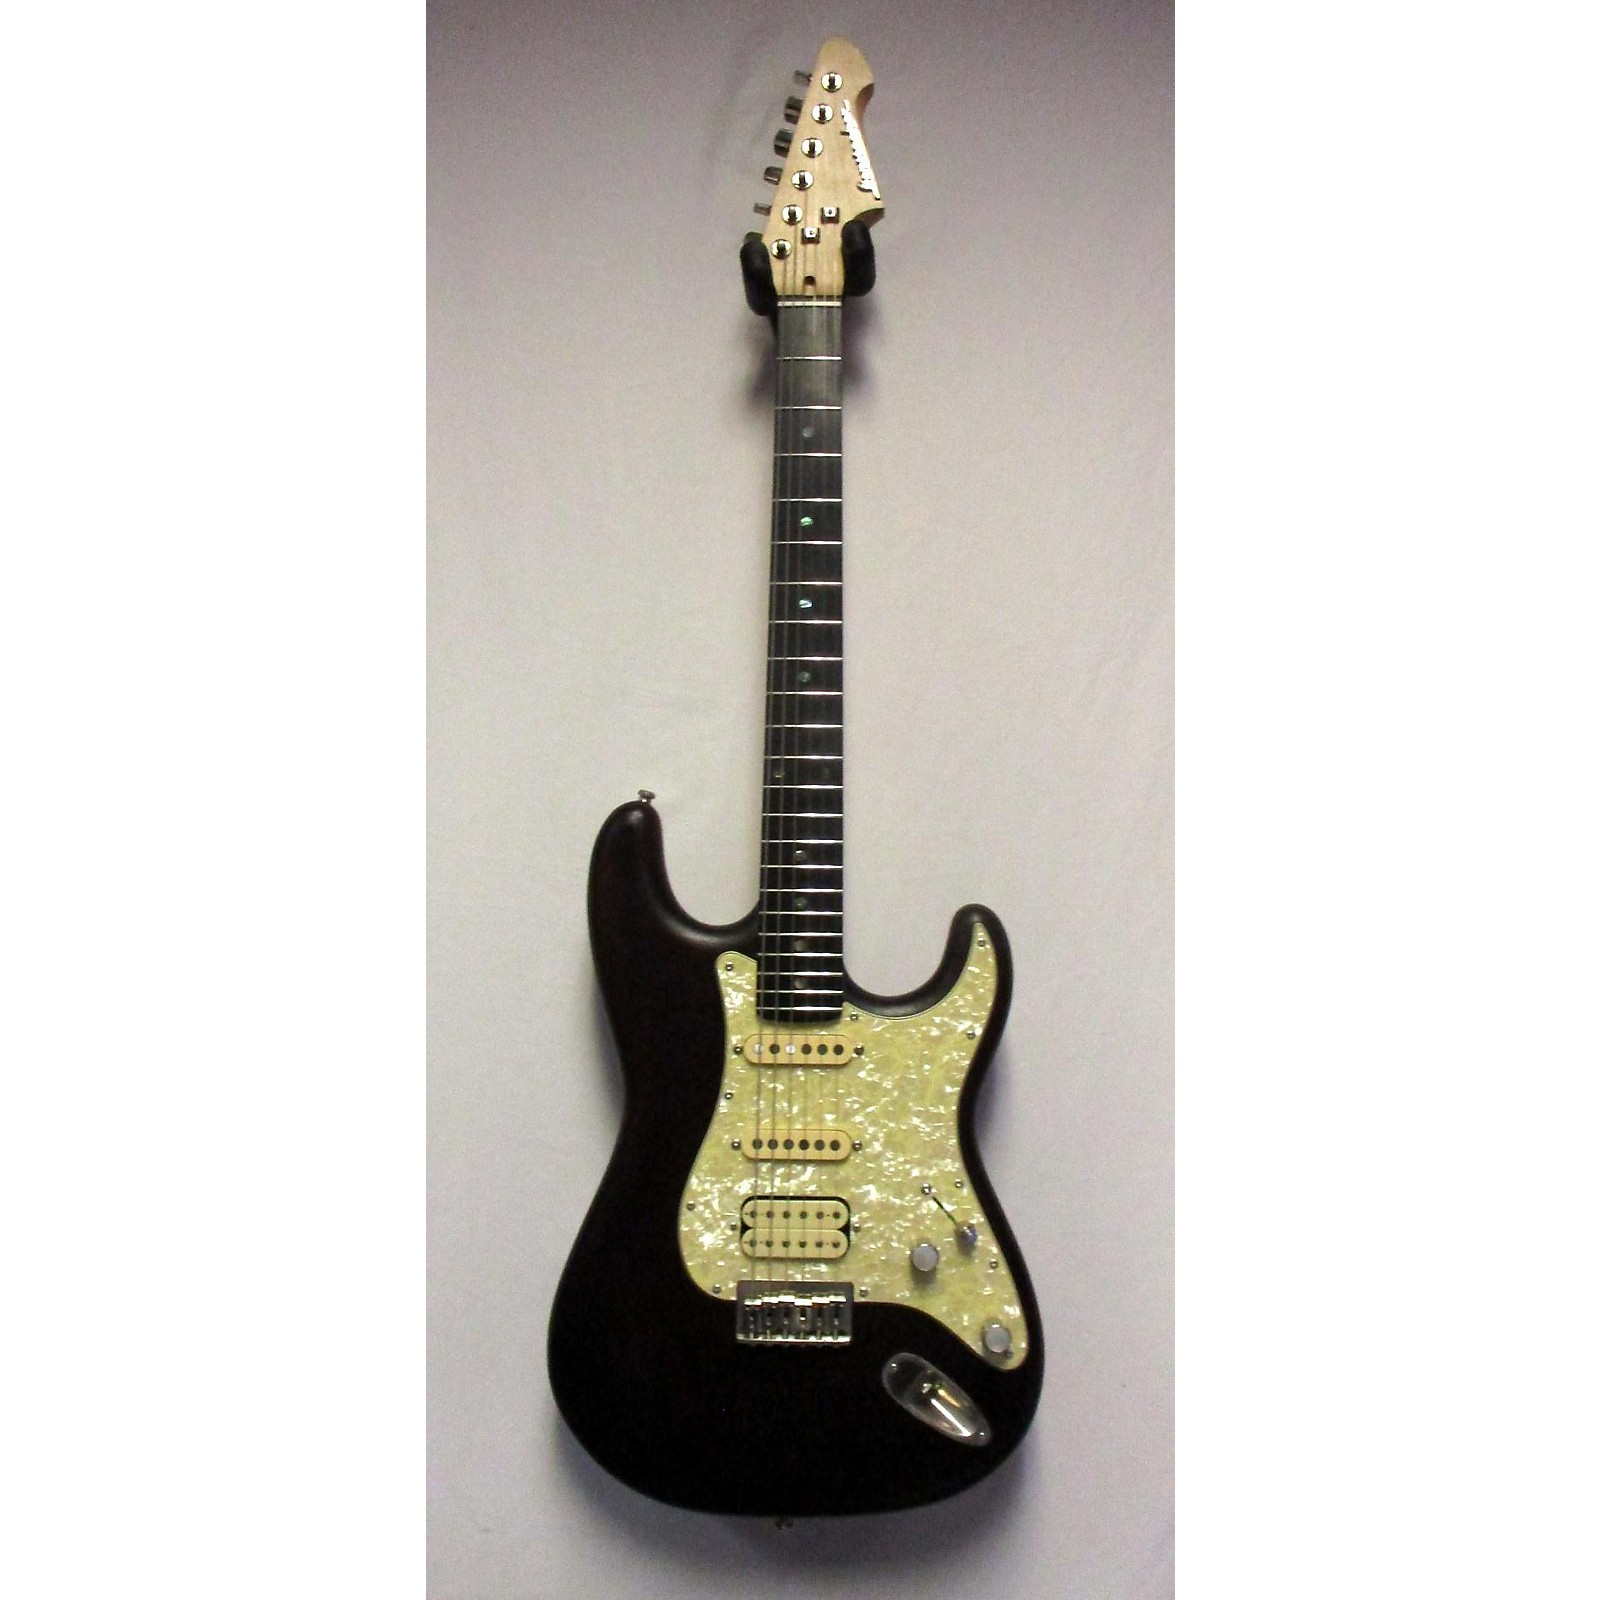 In Store Used Used 2017 BERSTECHER DELUXE Natural Solid Body Electric Guitar